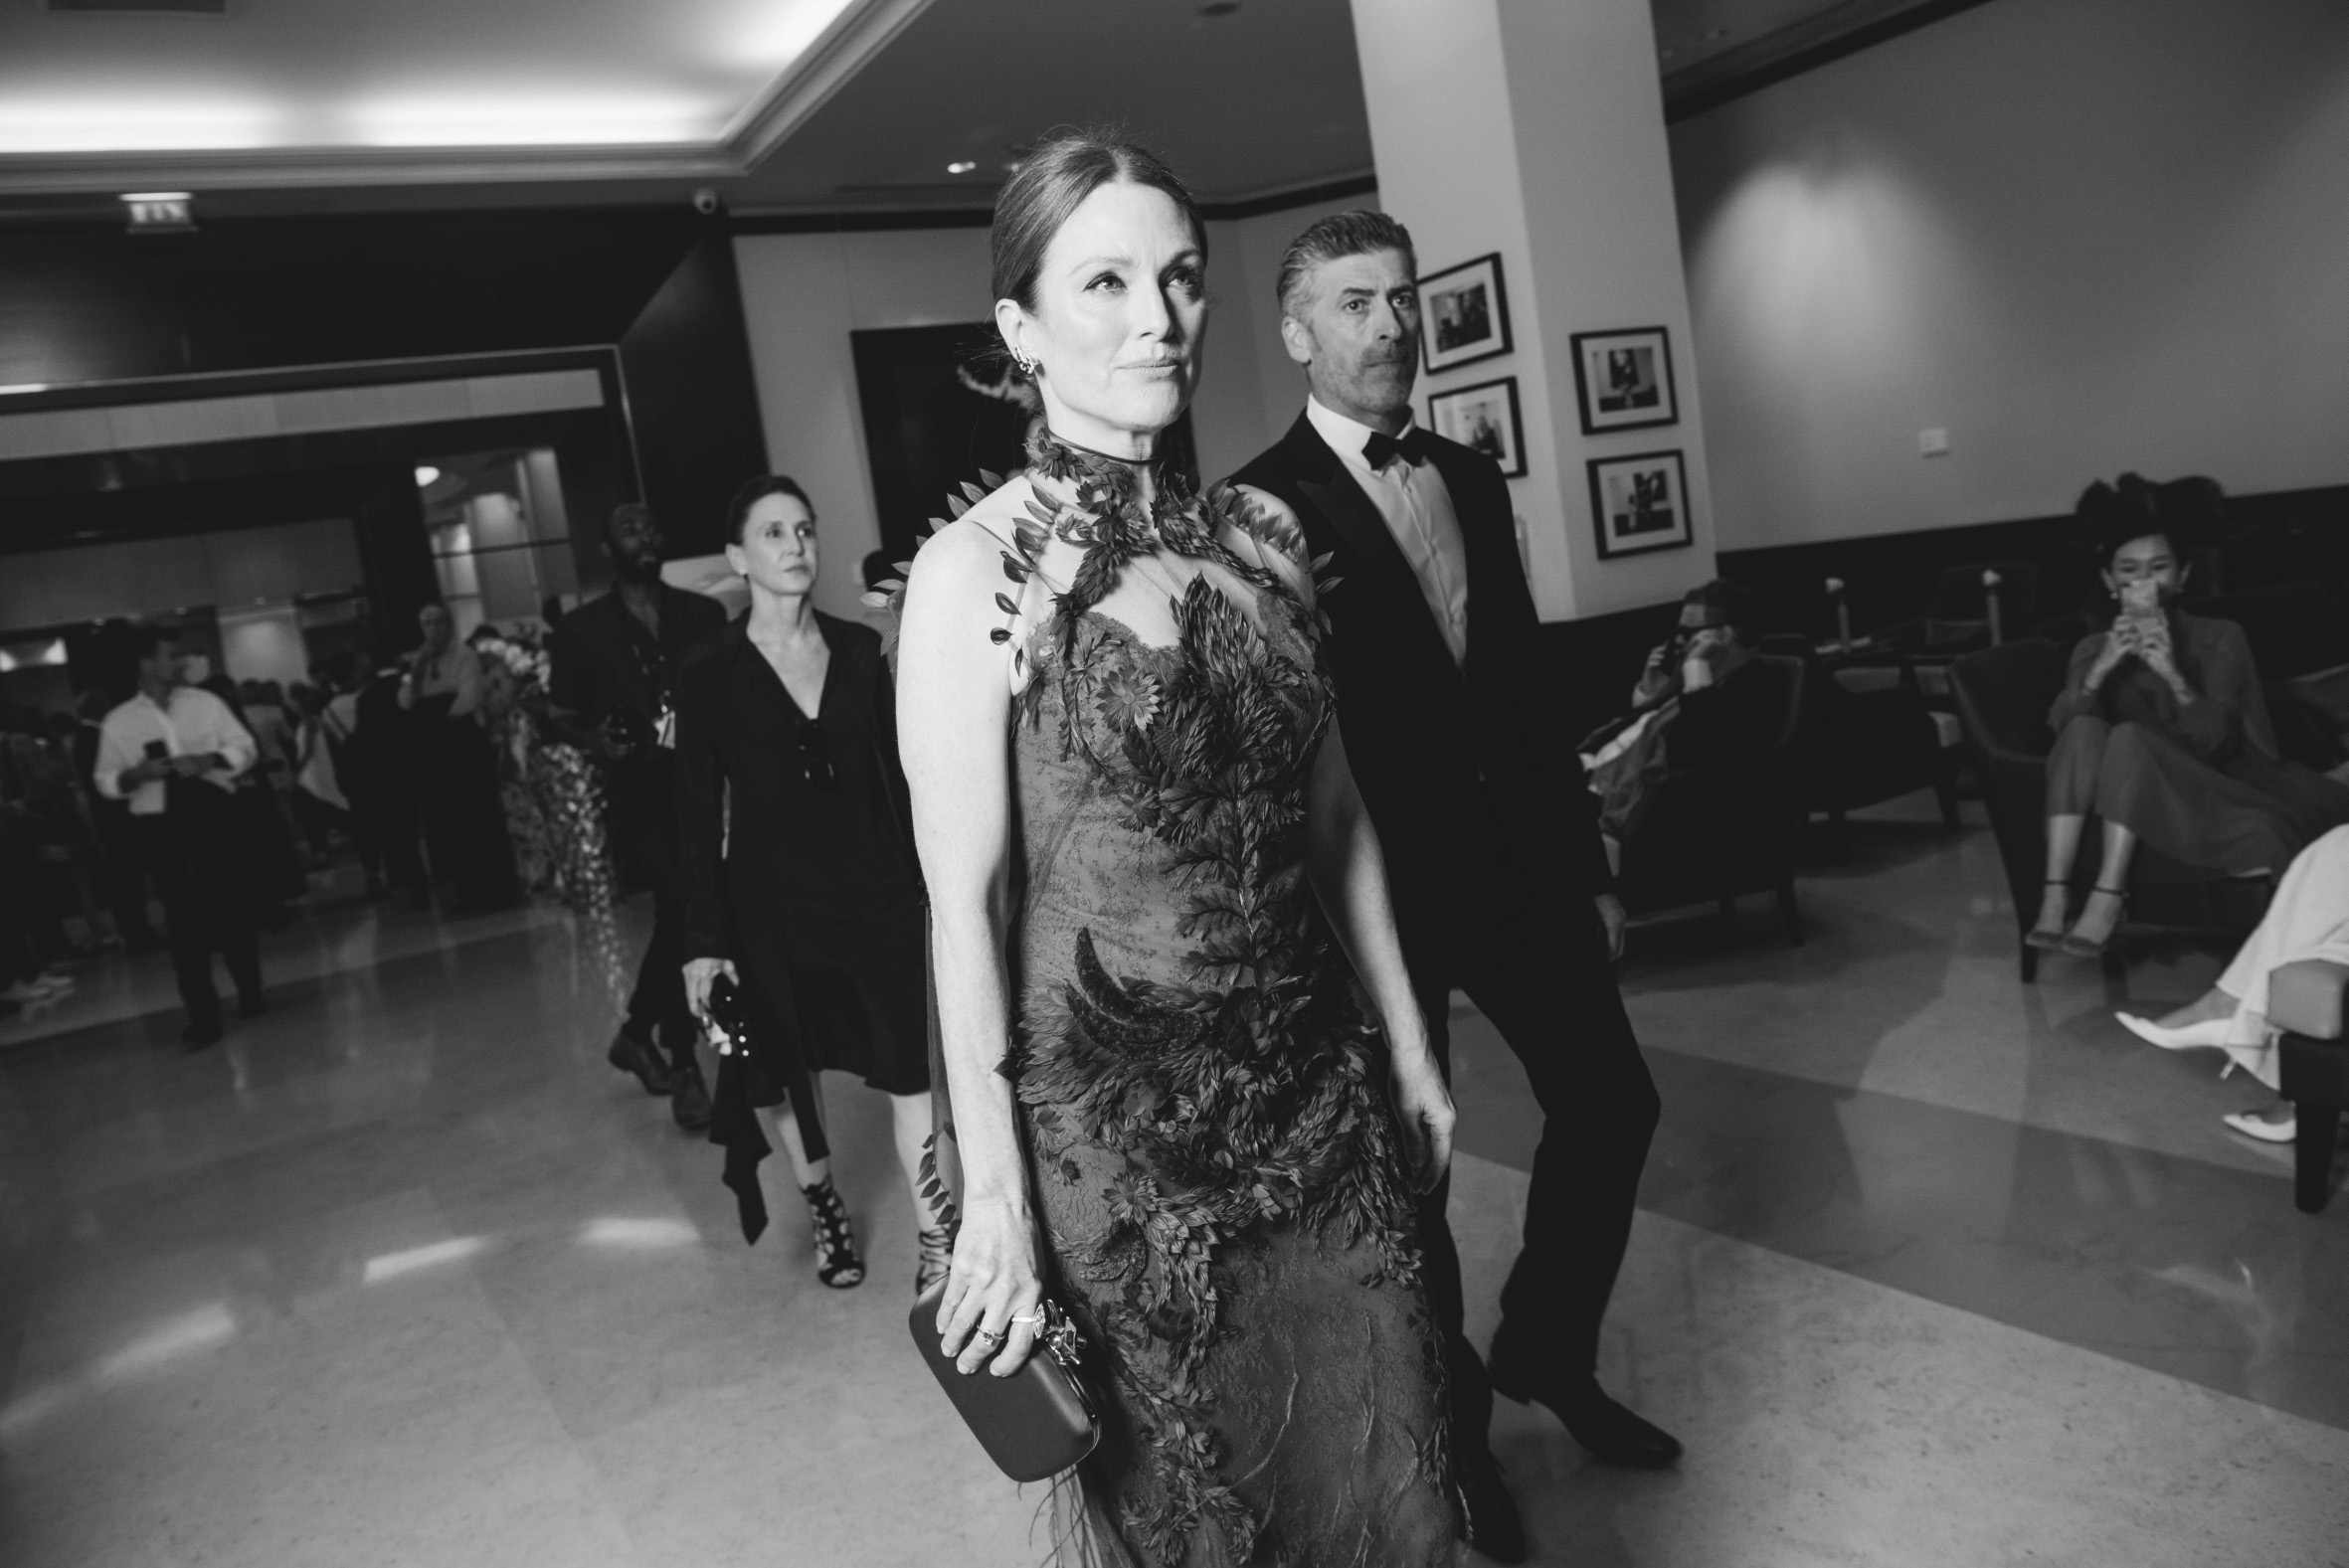 Julianna Moore arriving at the Cannes Fil Festival